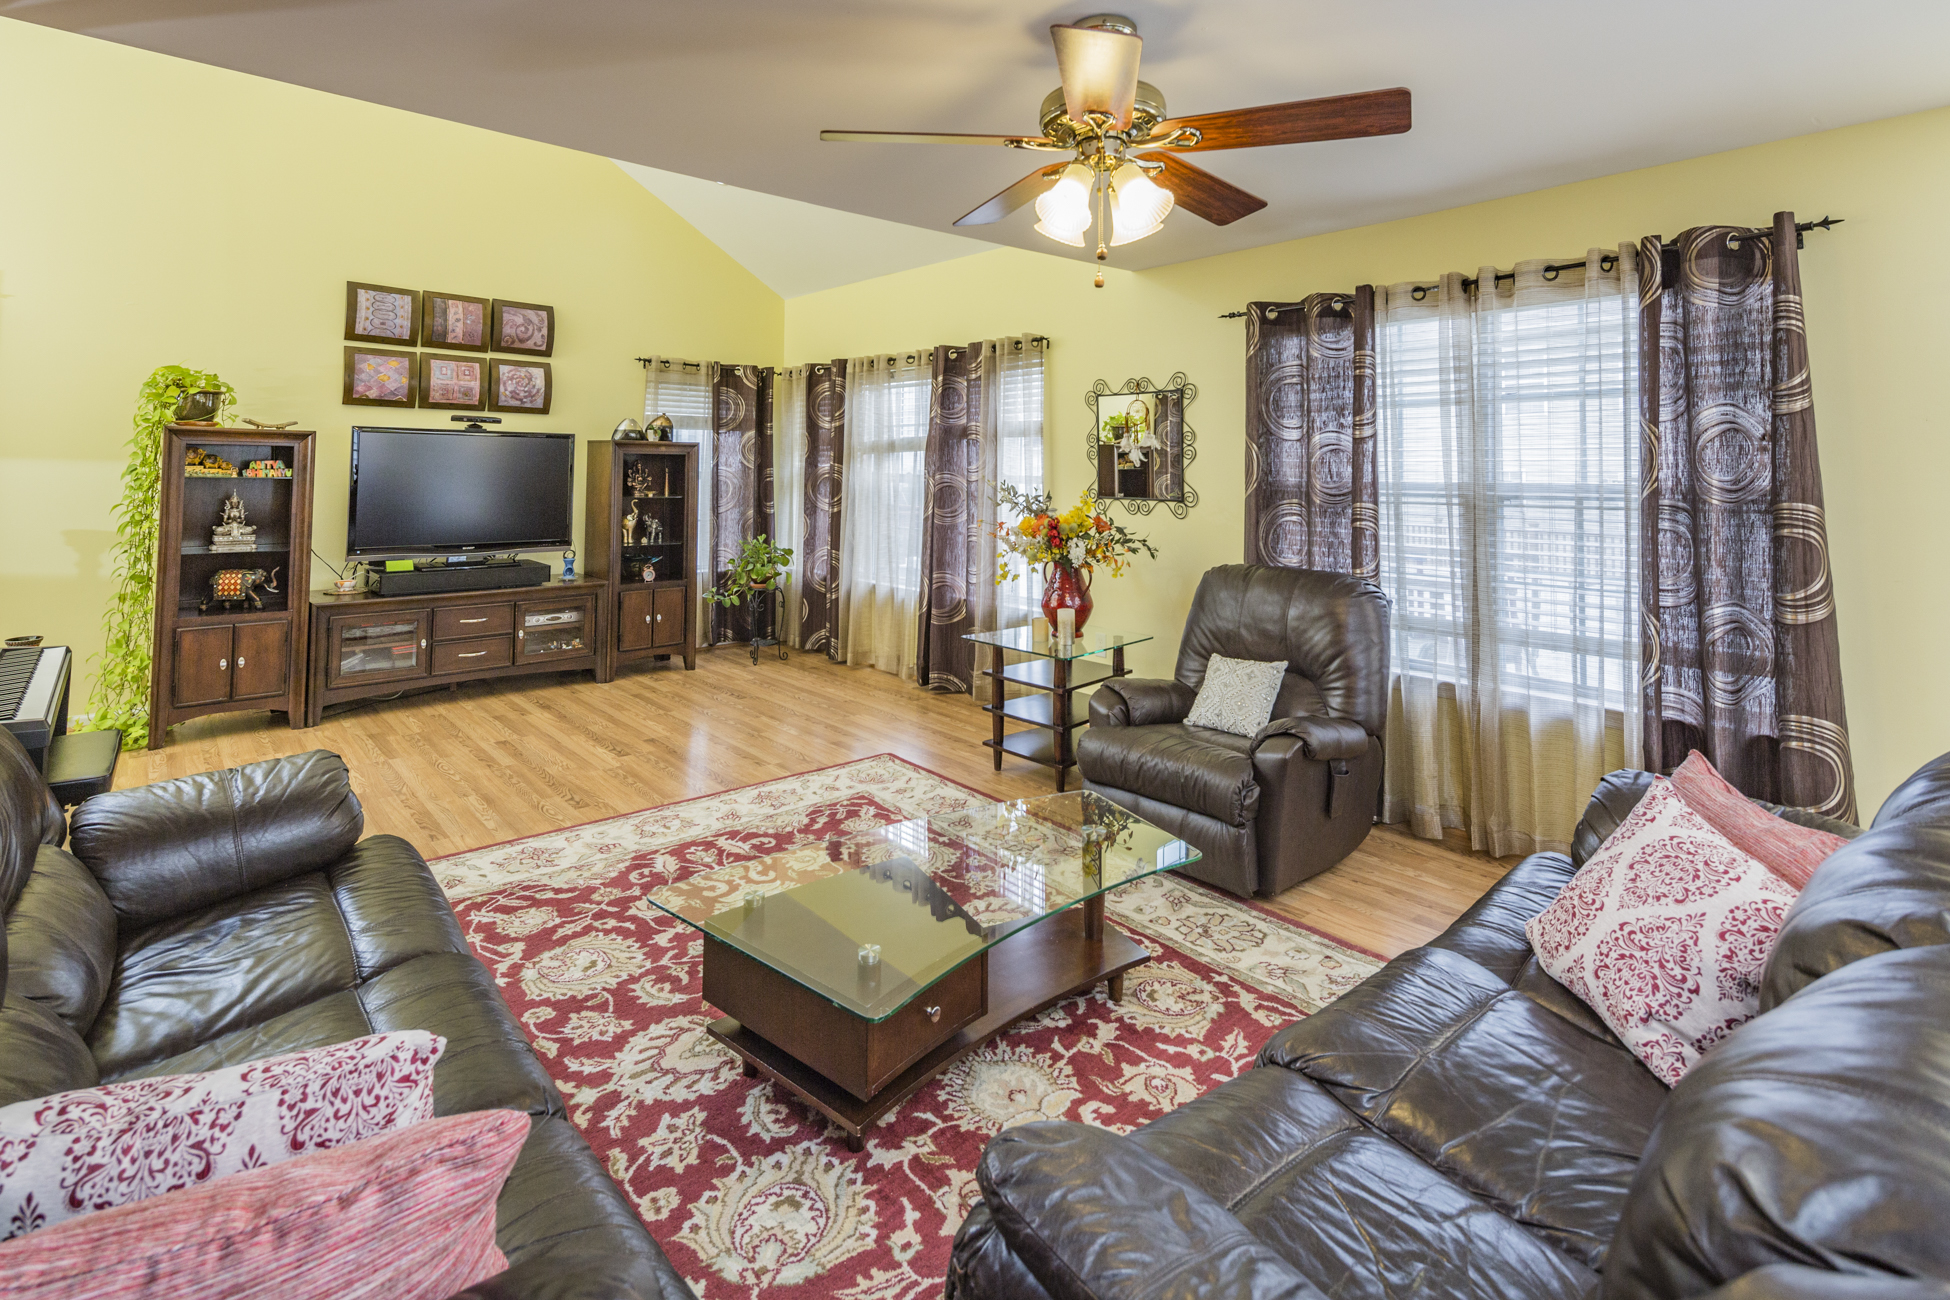 Additional photo for property listing at Bright, Airy, and Ultra-Convenient in Lawrence - Lawrence Township 113 Canal View Drive Lawrence, Nueva Jersey 08648 Estados Unidos